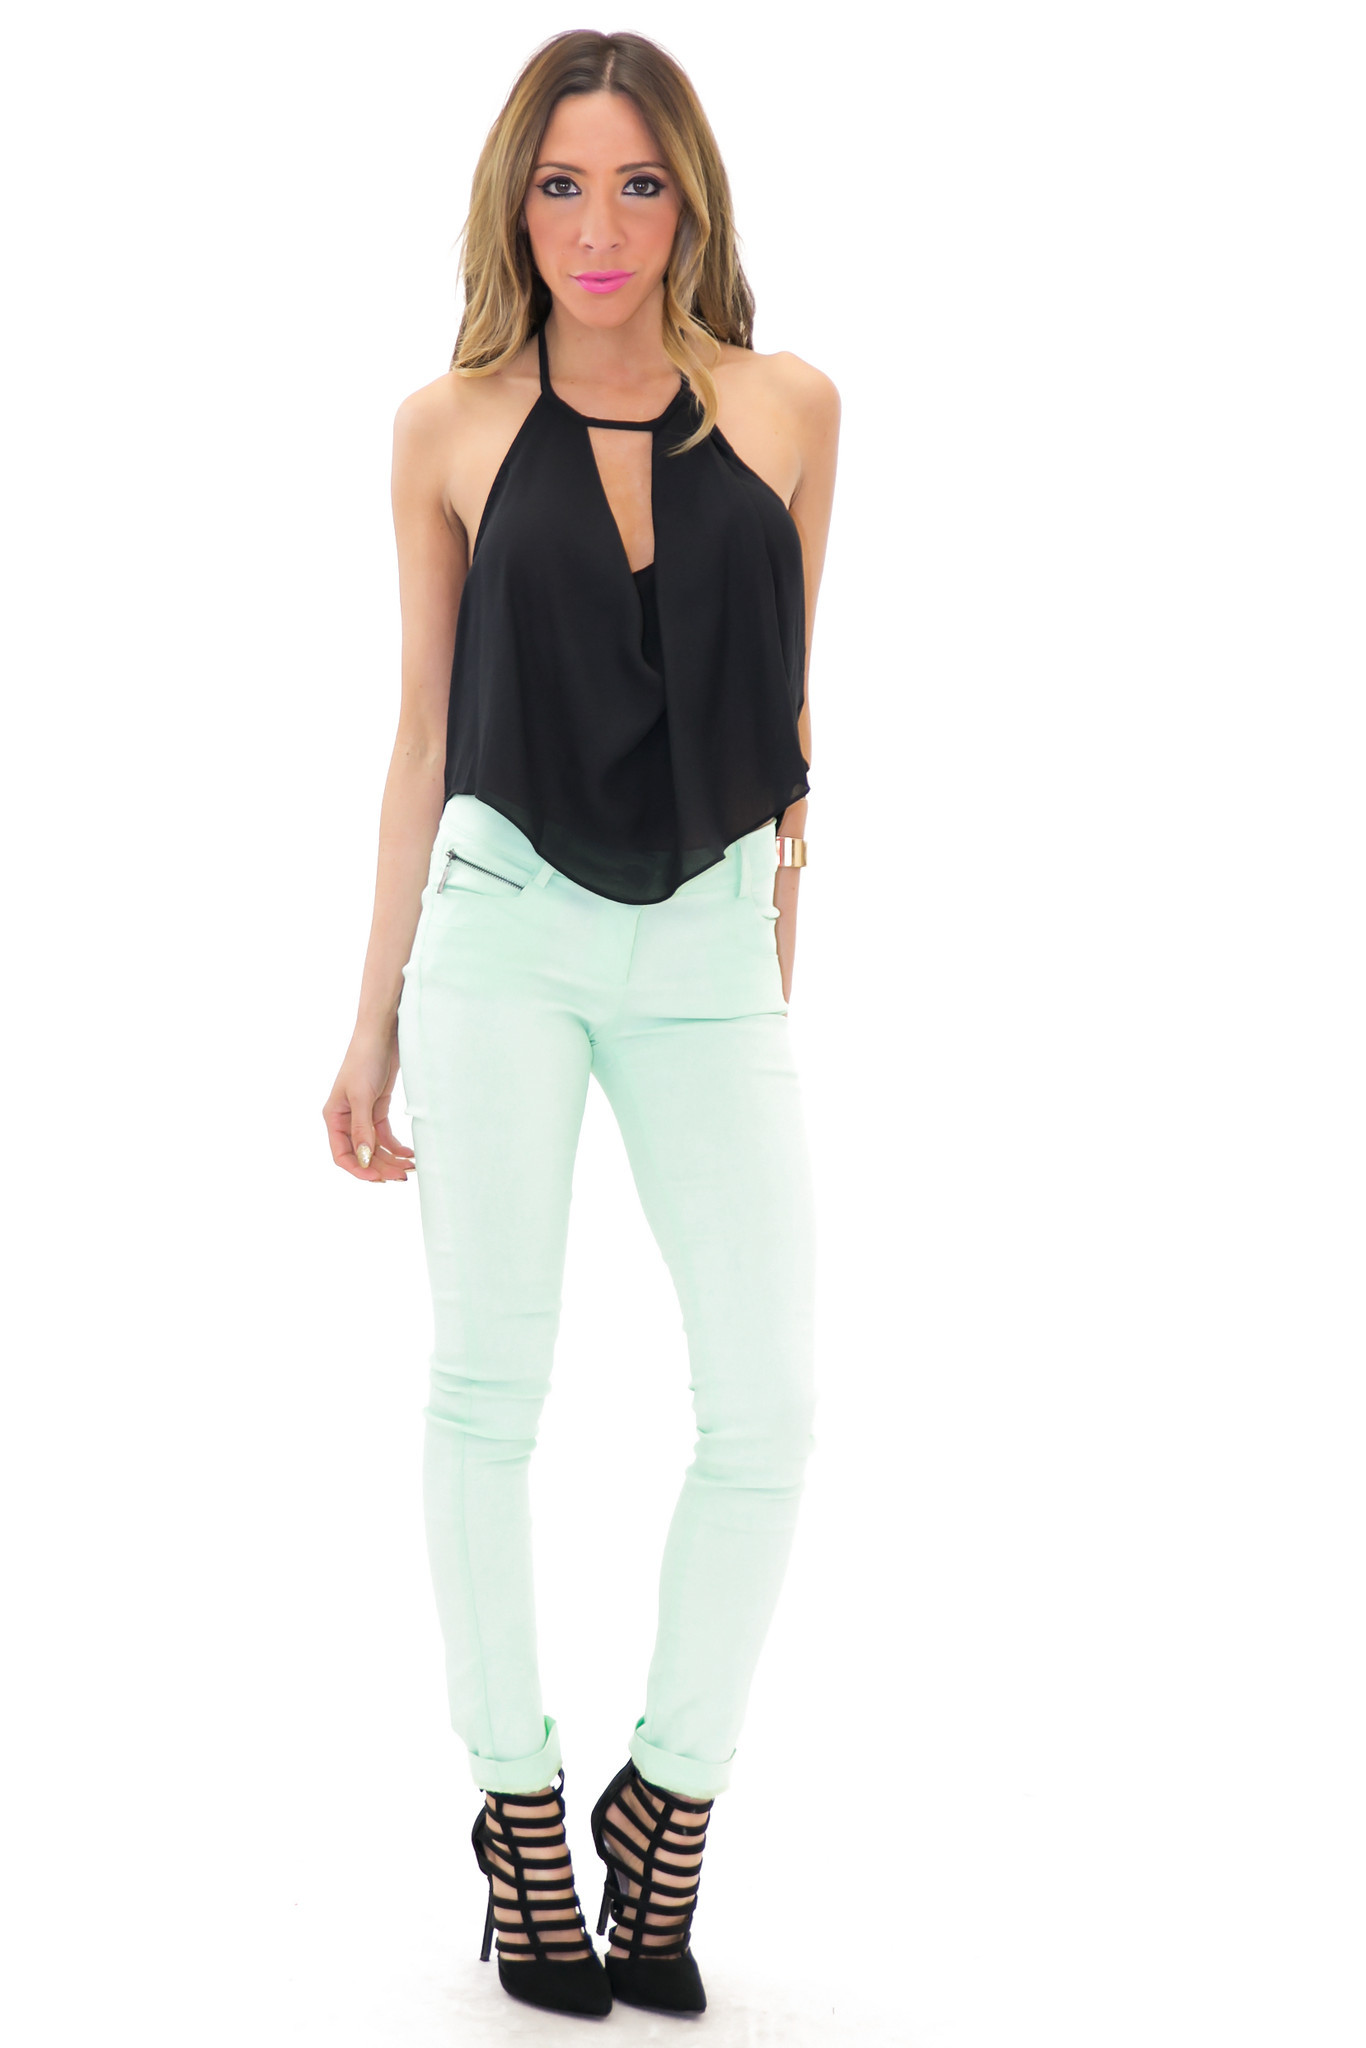 EVERITT SKINNY JEAN - Mint | Haute & Rebellious